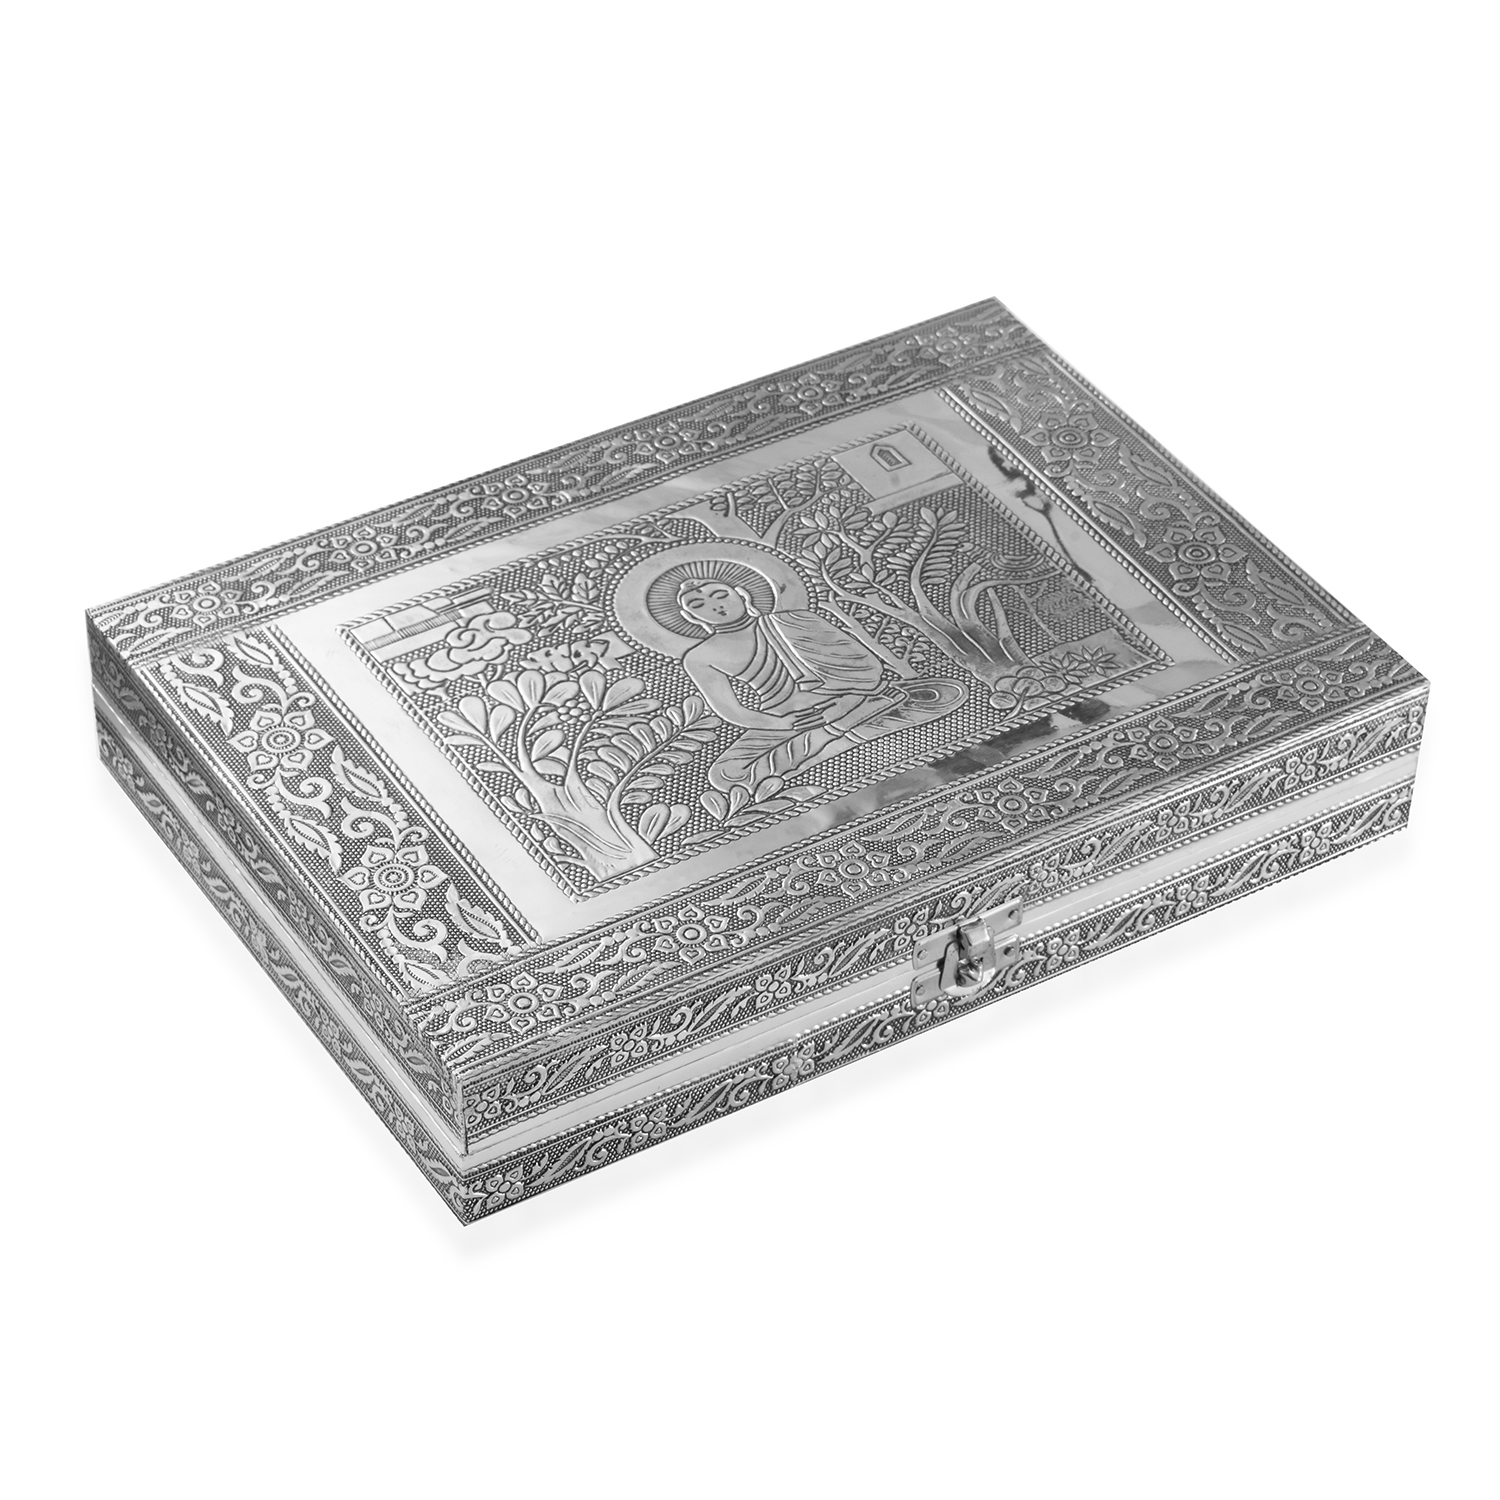 Handcrafted Aluminum Buddha Engraved Jewelry Box Scratch Protection Interior 11x2x8 In